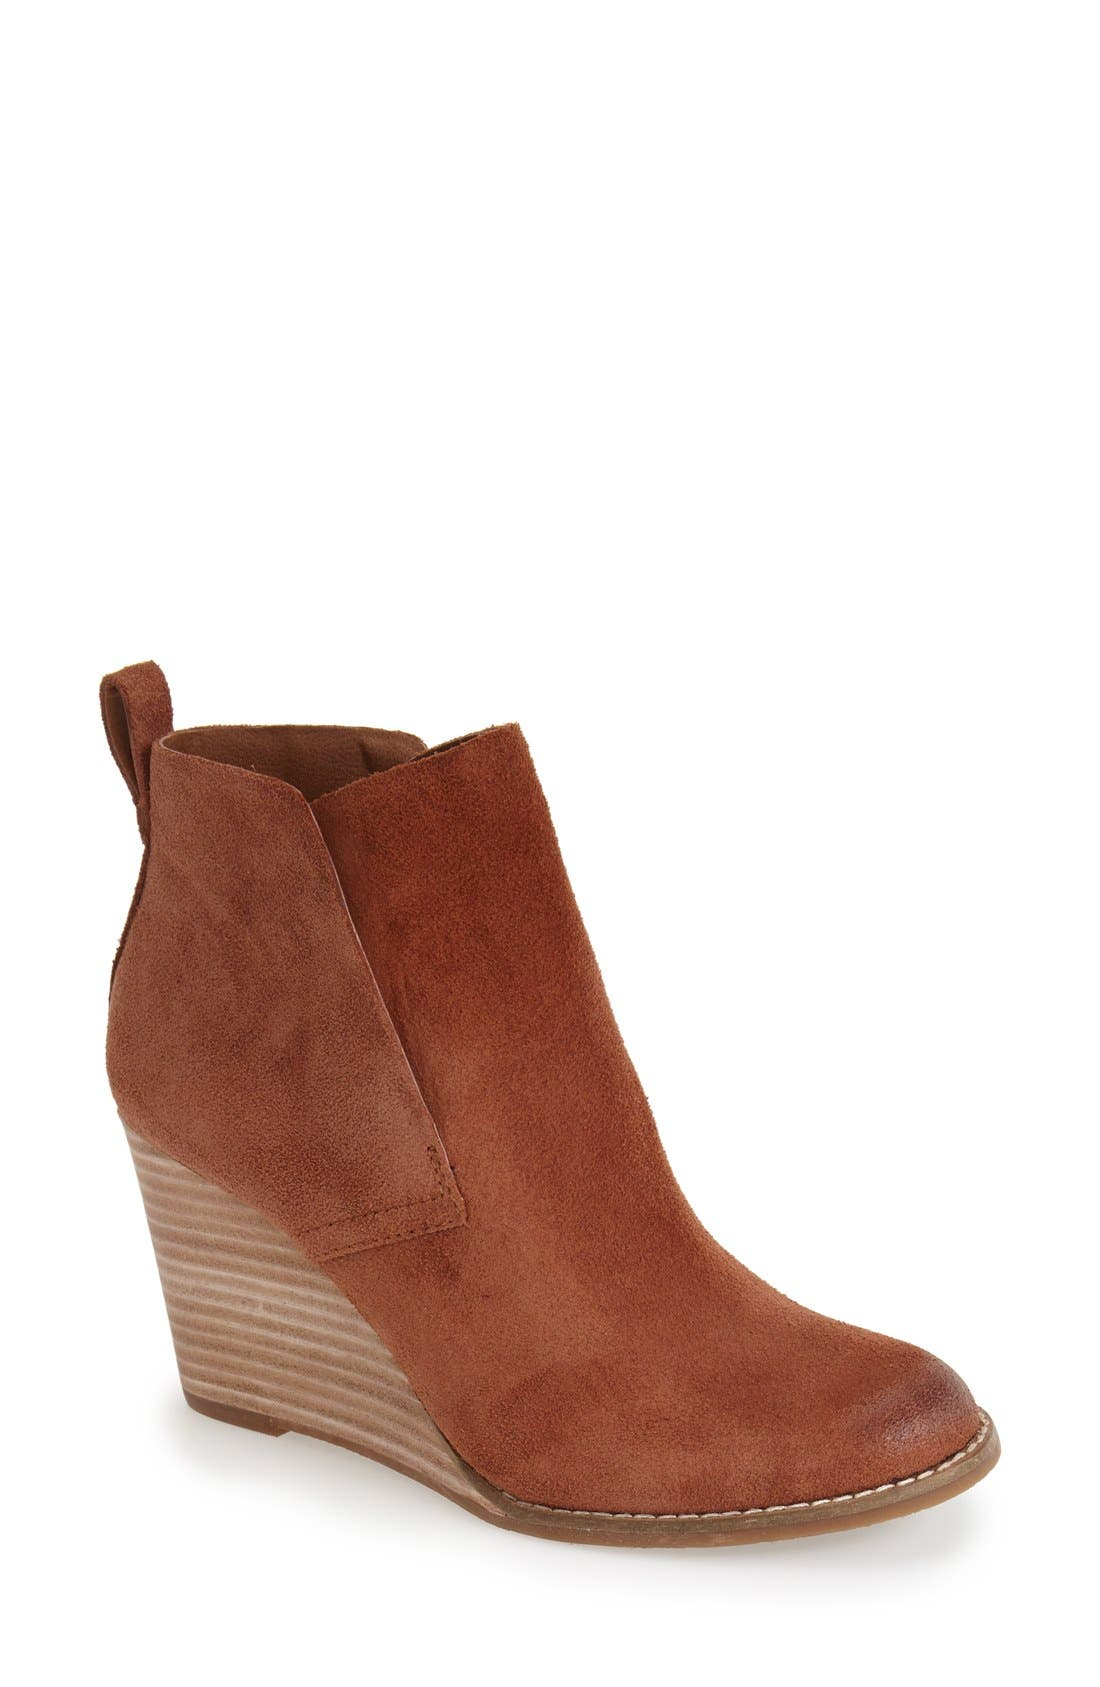 'Yoniana' Wedge Bootie,                             Main thumbnail 2, color,